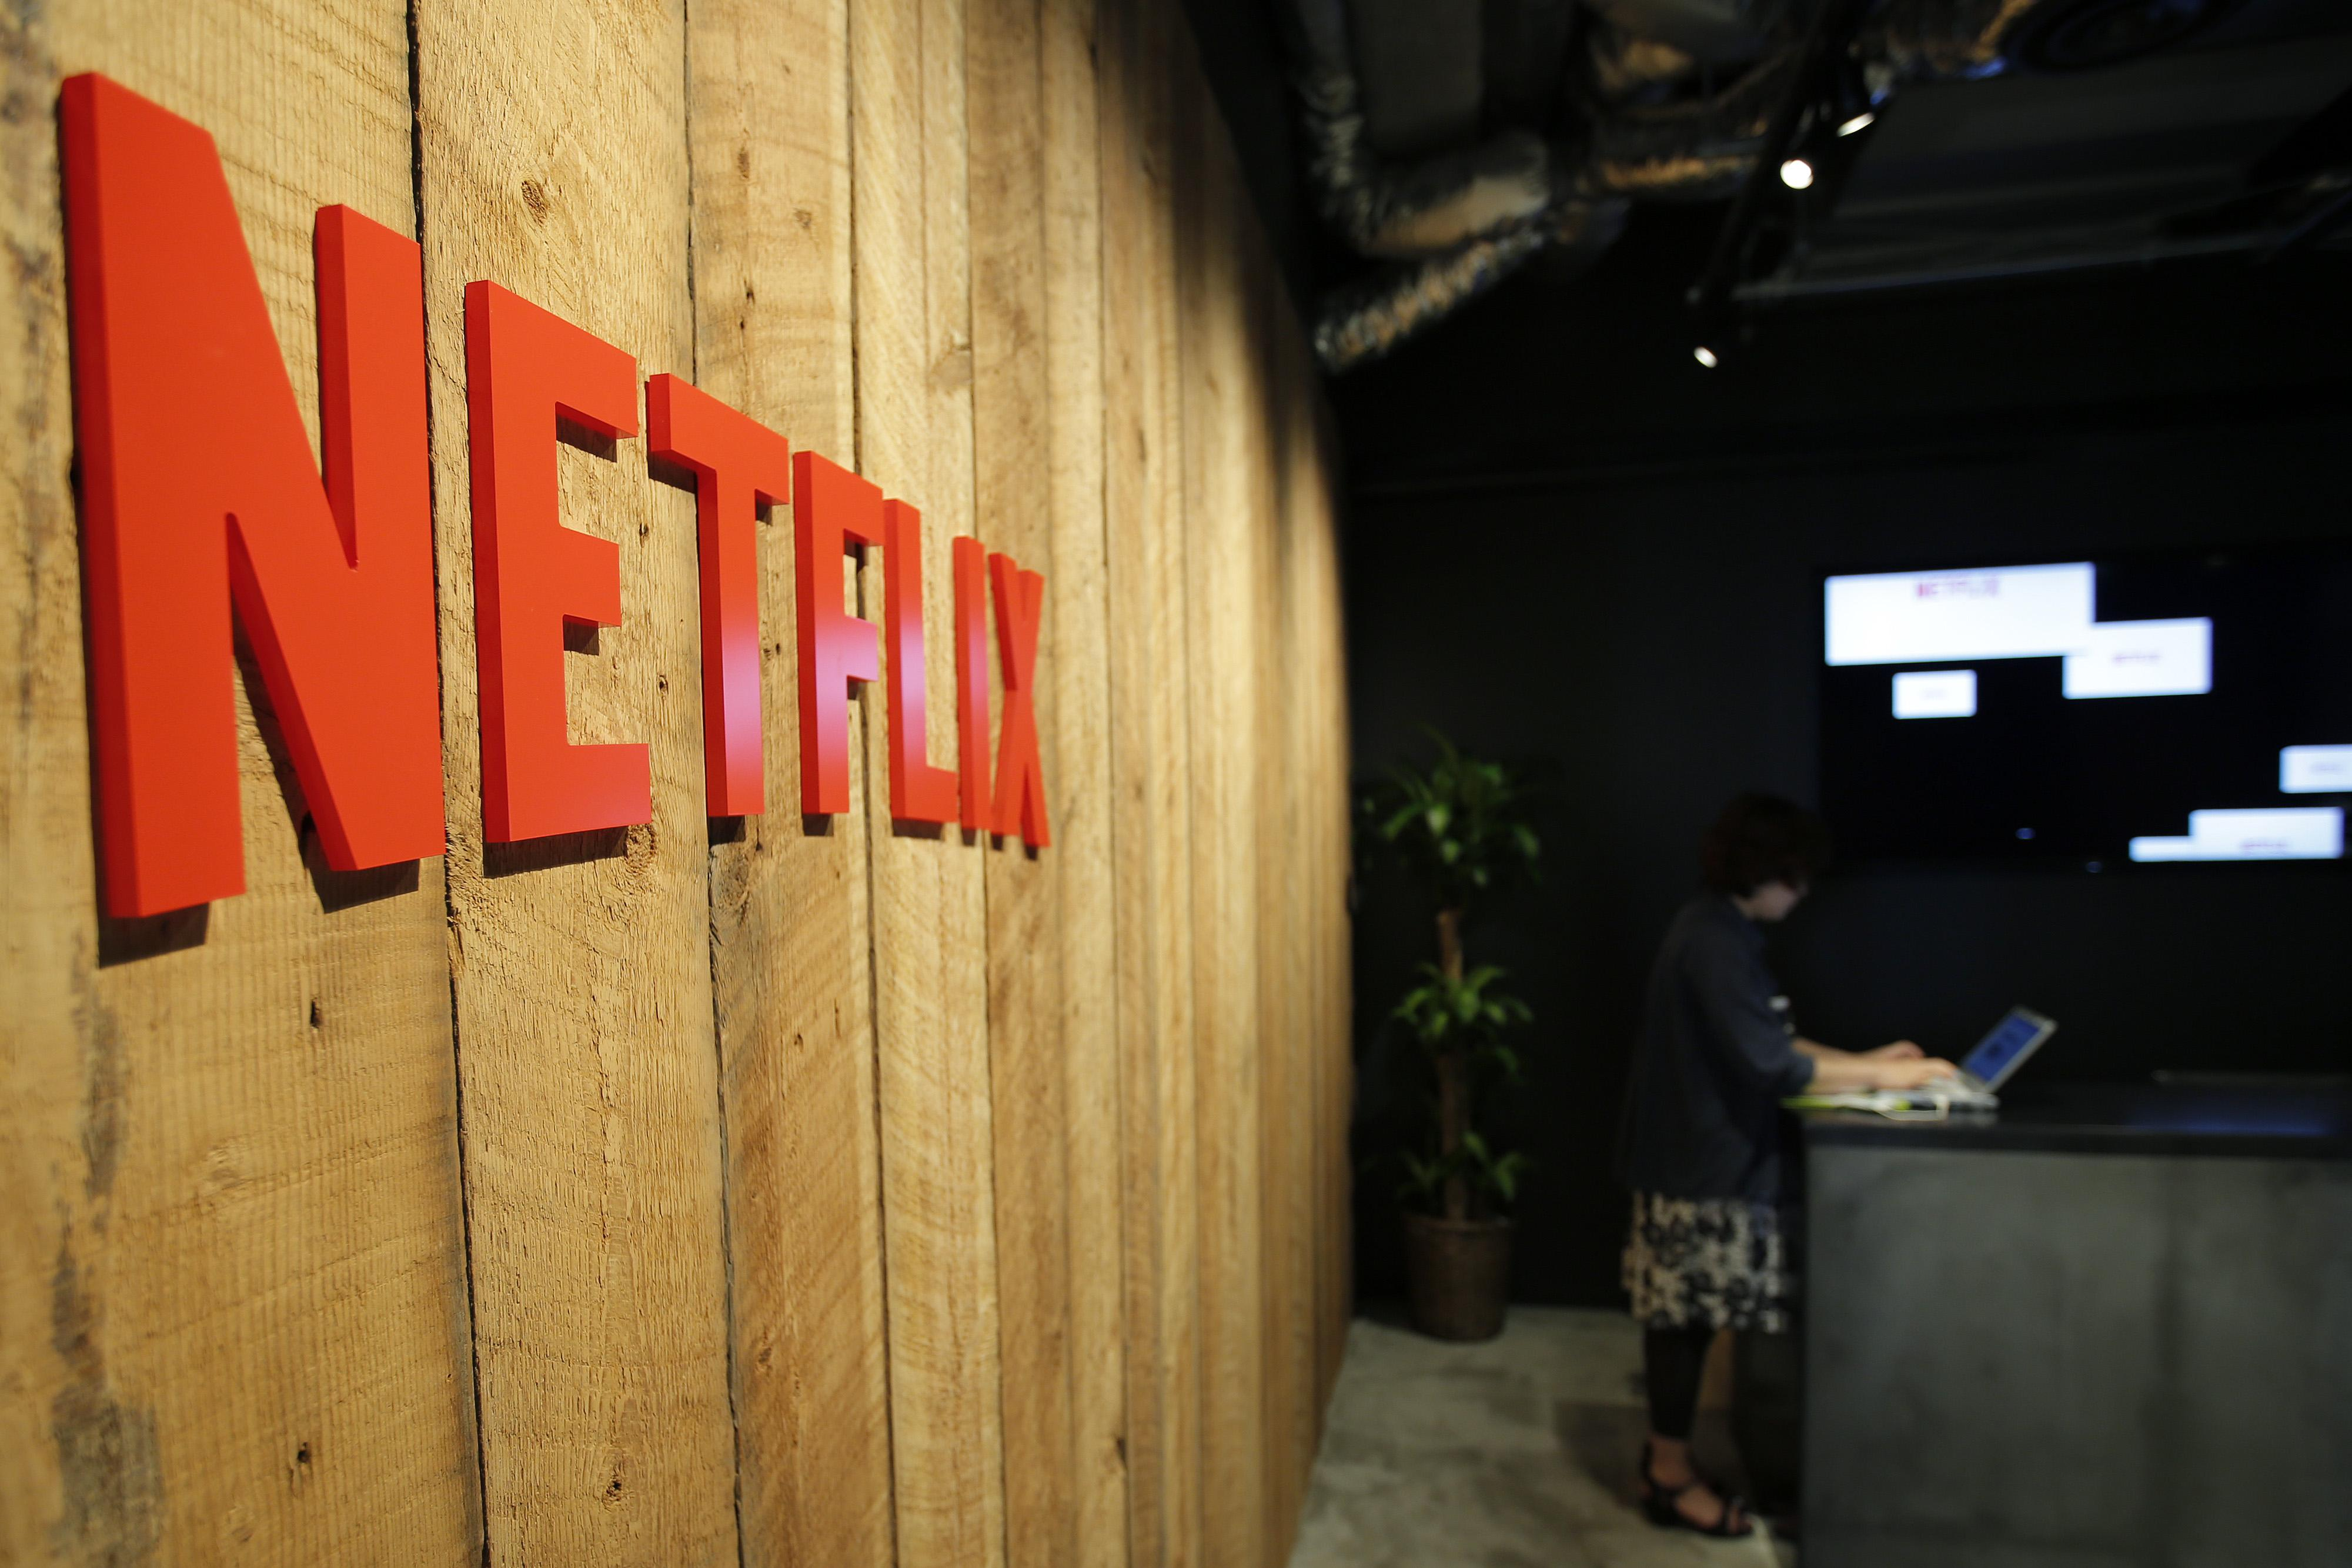 Netflix (NFLX) Share Price: What to Expect from Q2 Earnings | IG SG